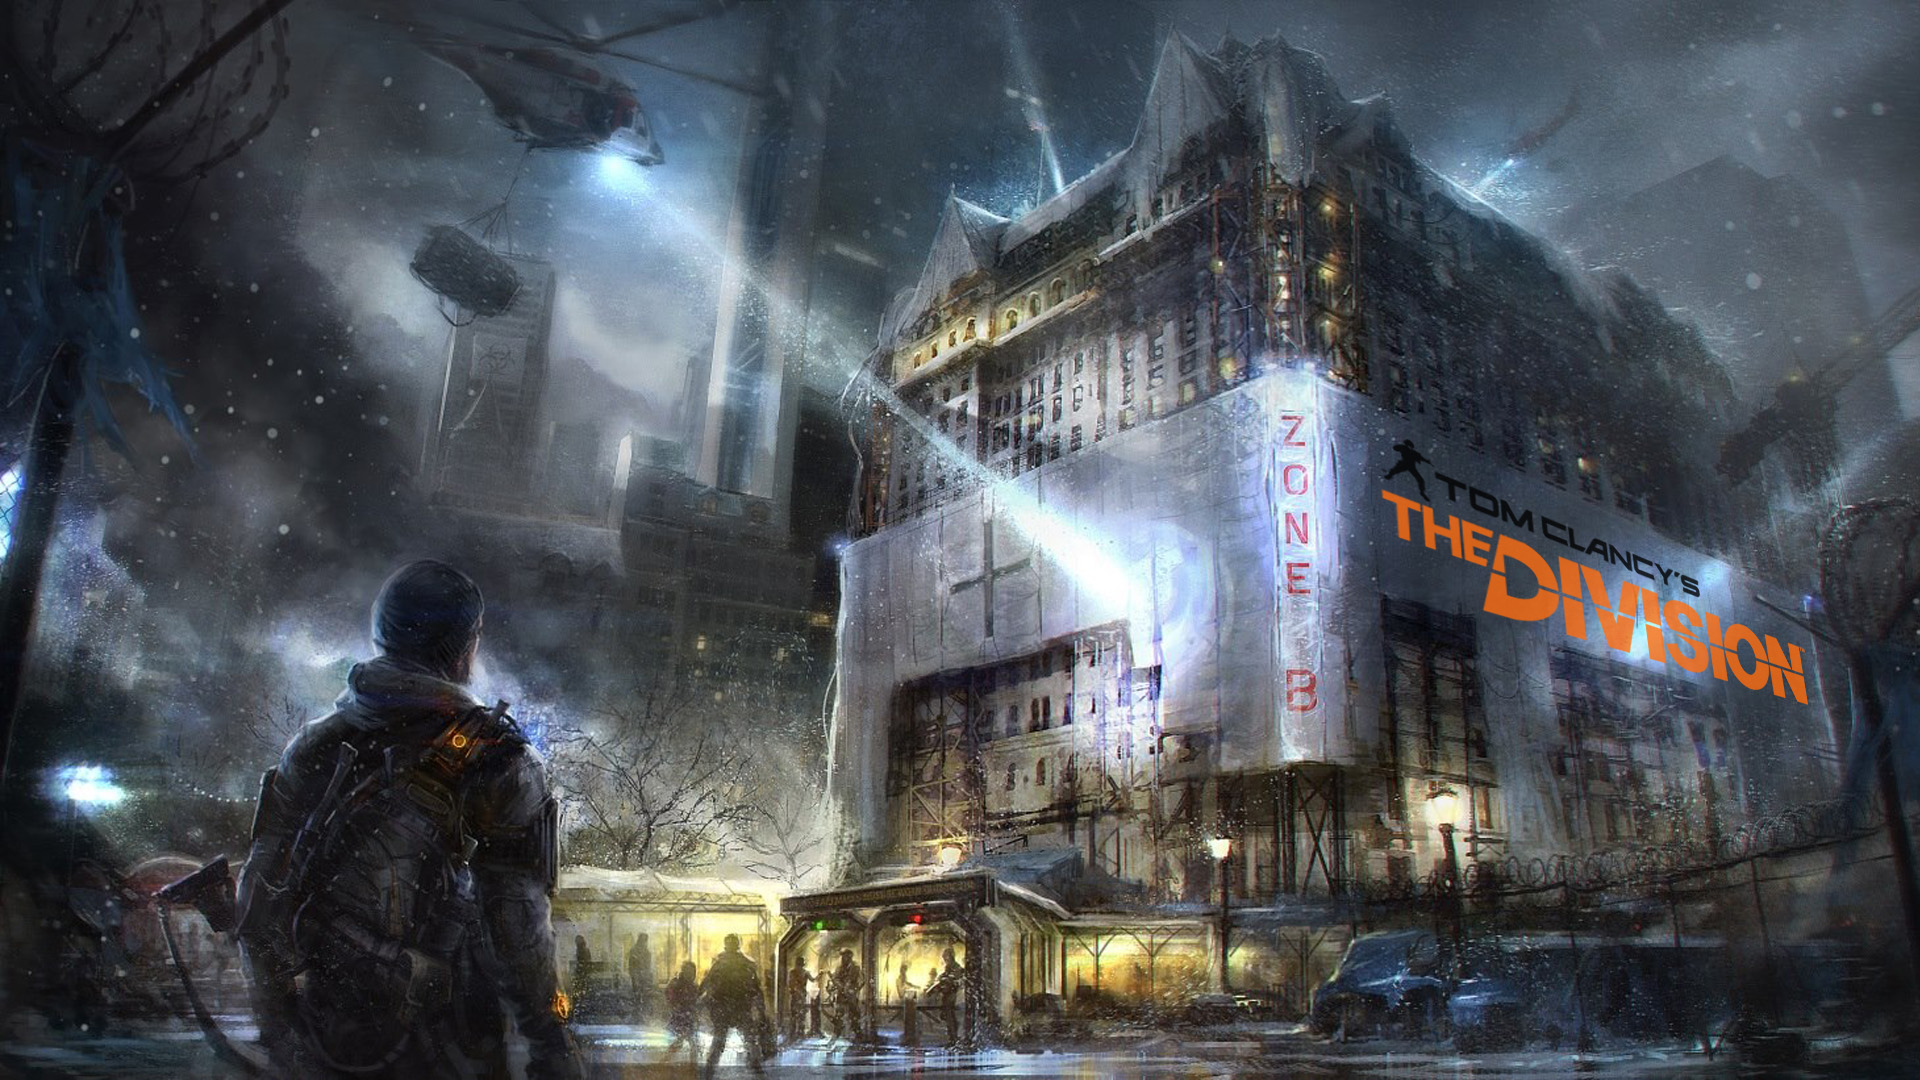 Hd wallpaper zone - The Division Iphone Wallpaper The Division Wallpaper Zone B